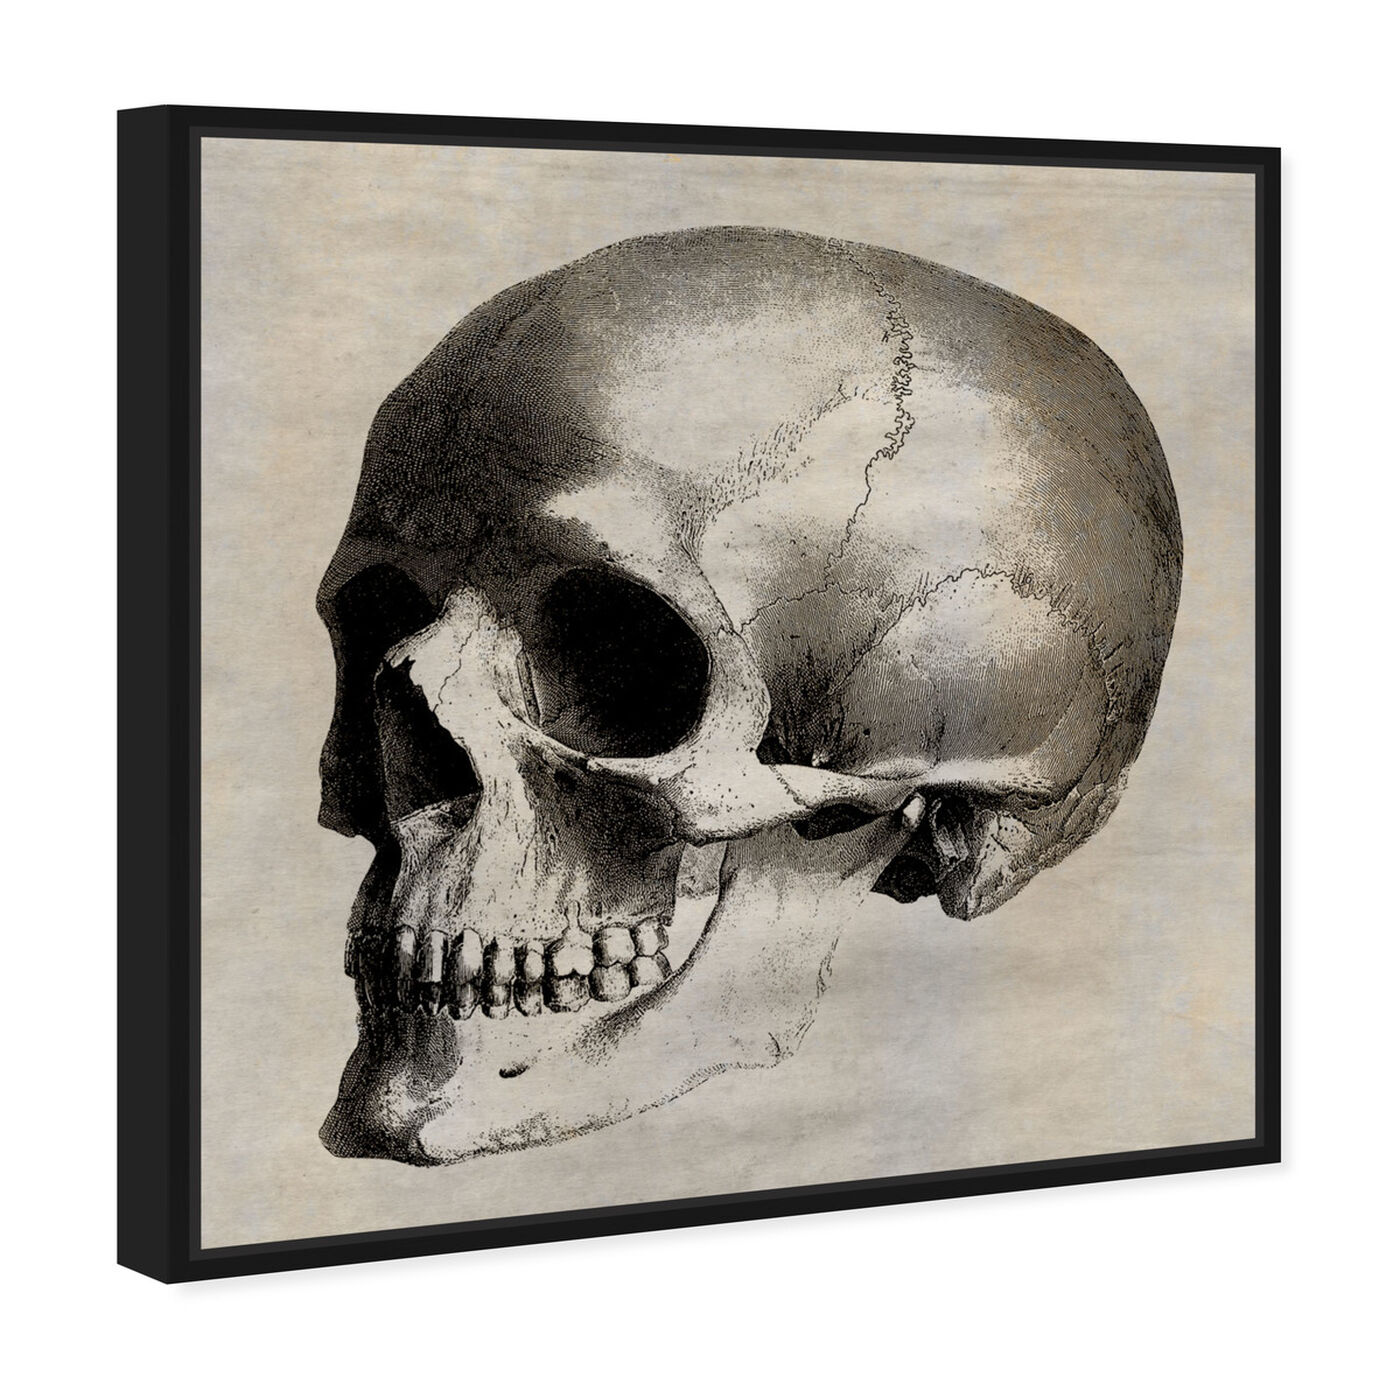 Angled view of Skull Side featuring symbols and objects and skull art.